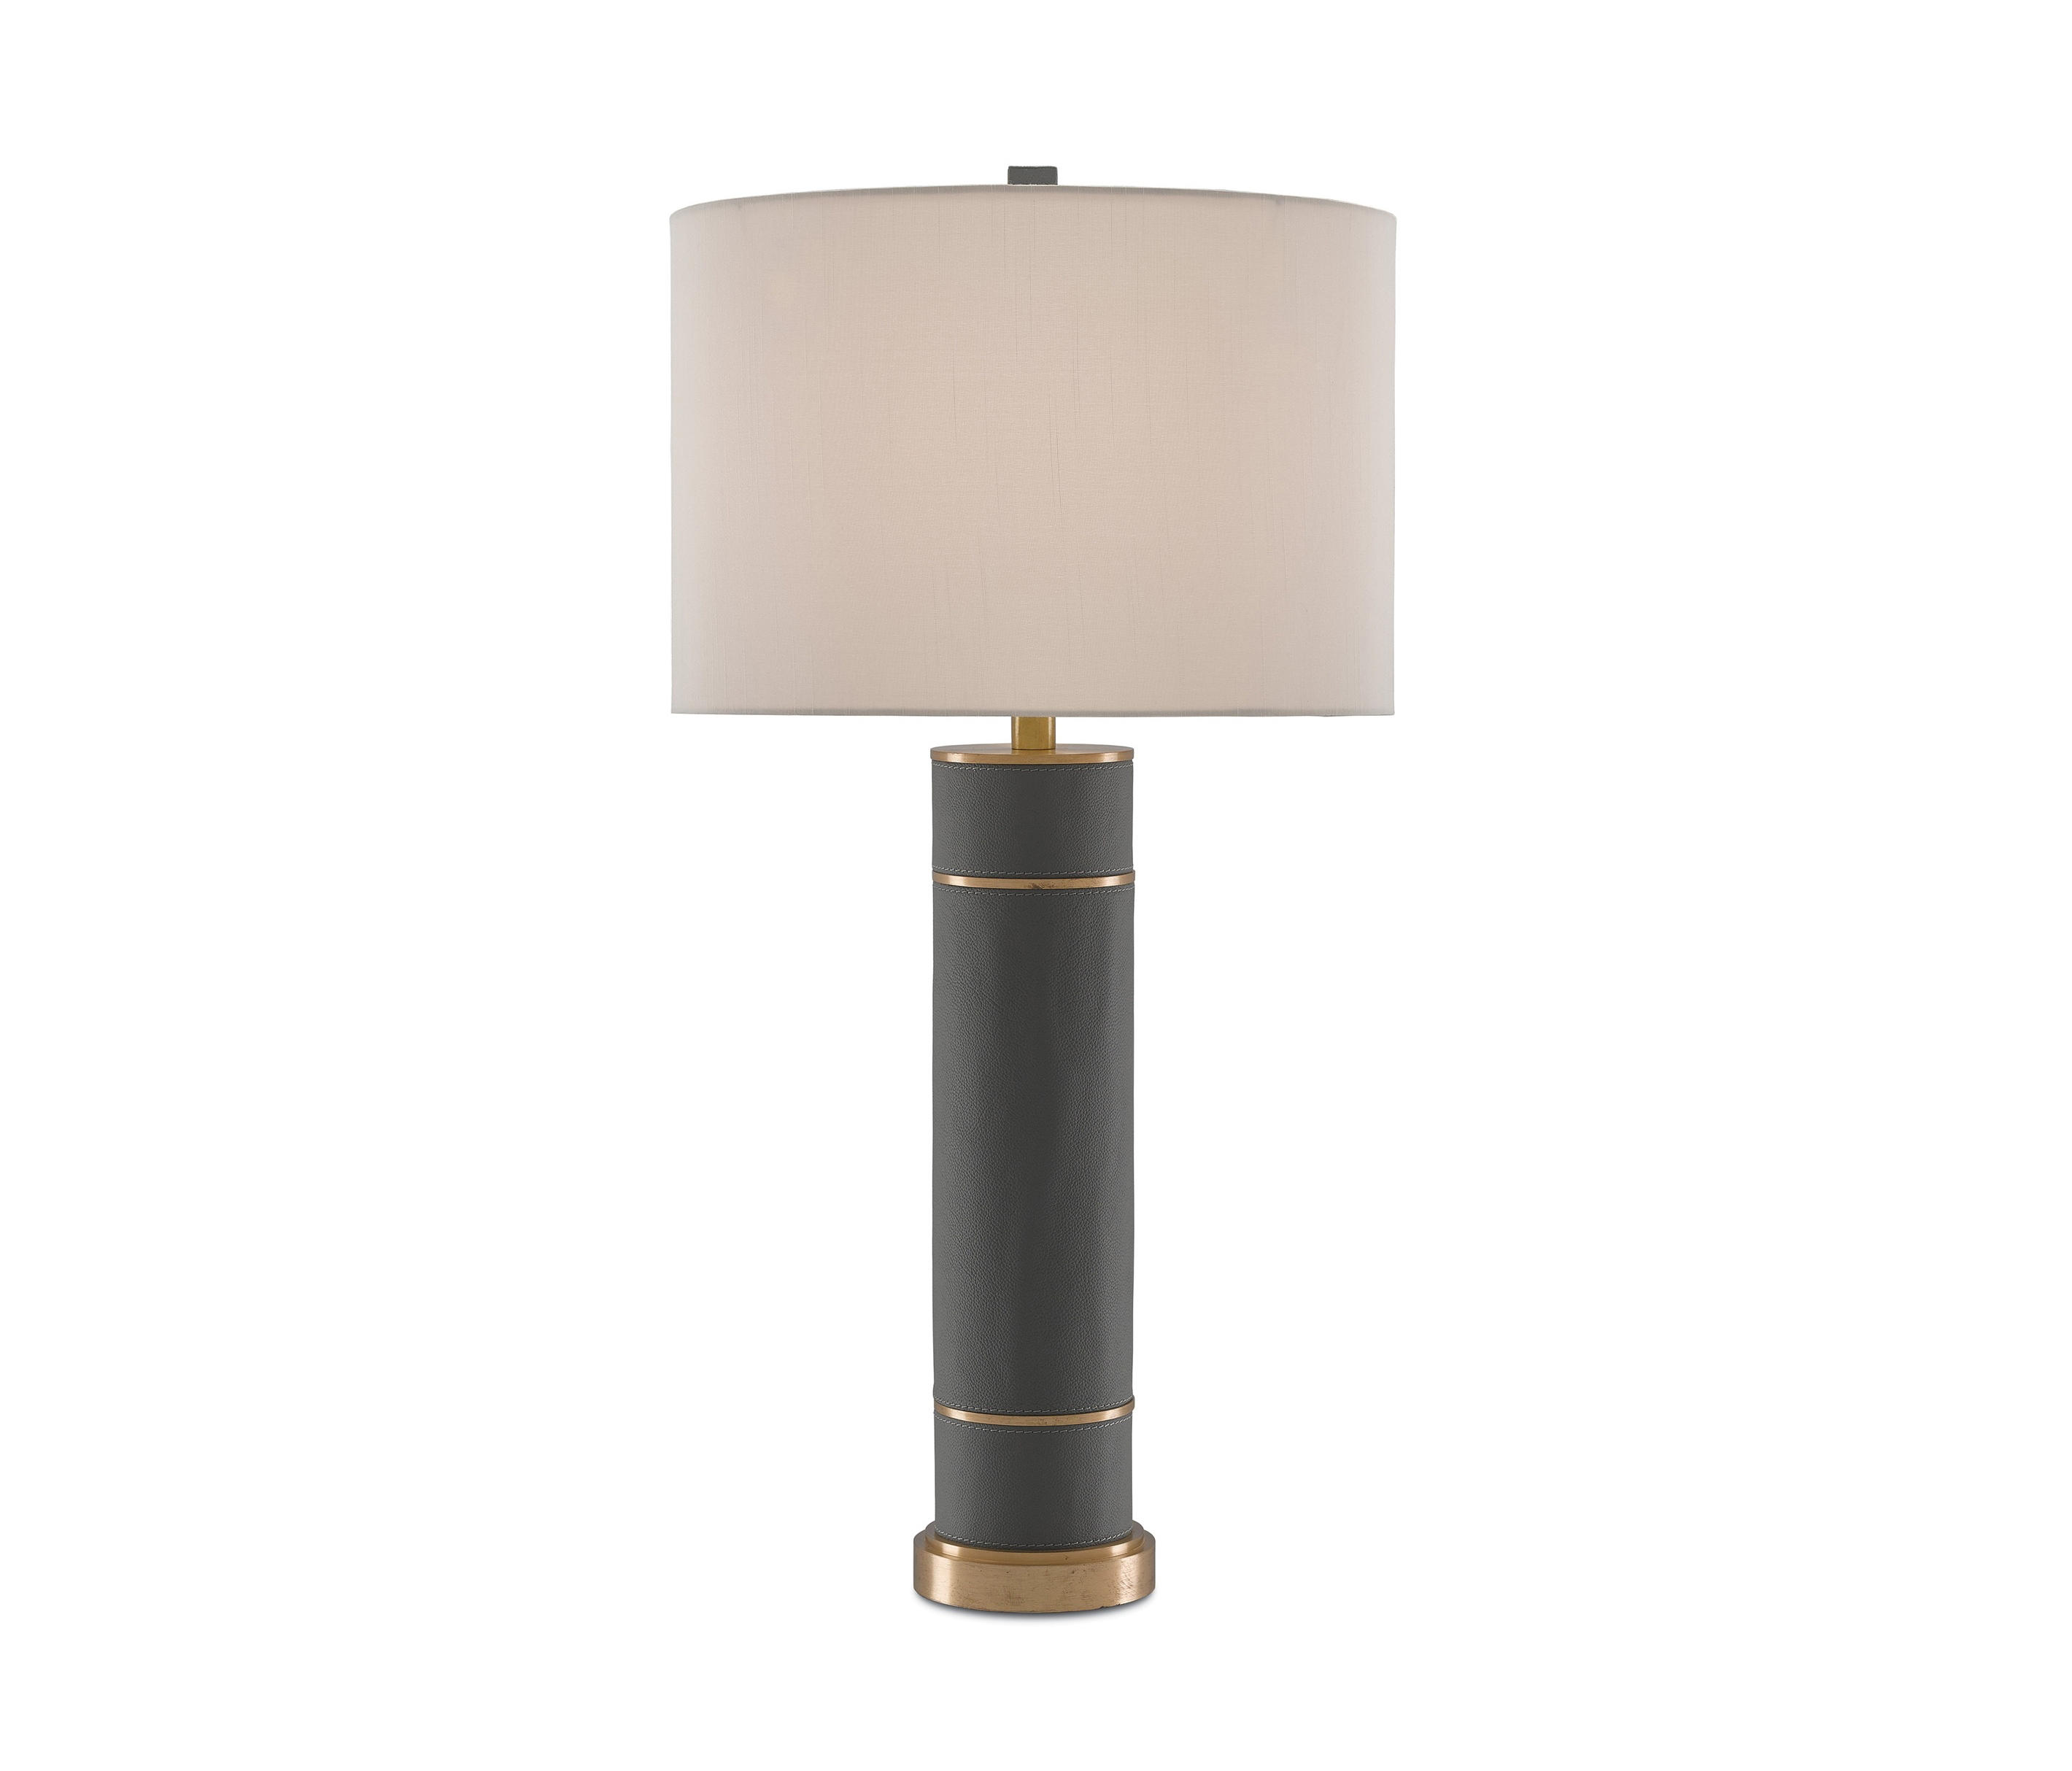 Archive table lamp general lighting from currey company architonic archive table lamp by currey company general lighting arubaitofo Gallery